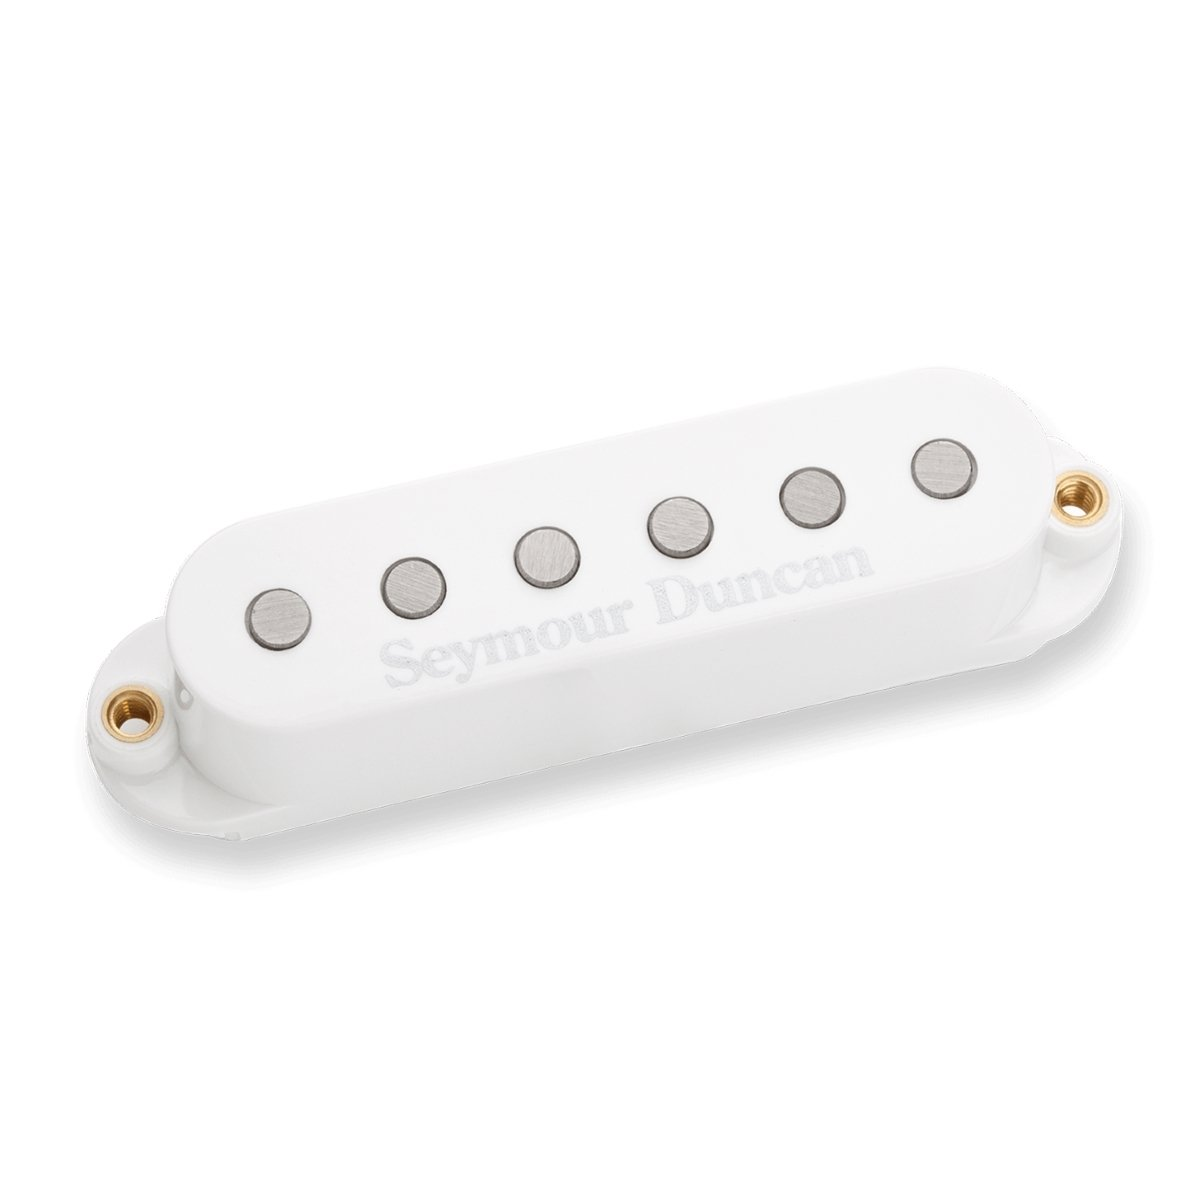 Seymour Duncan Stk S7 Vintage Hot Stack Plus White Using Stacks 3 Pickup Wiring Diagram Musical Instruments